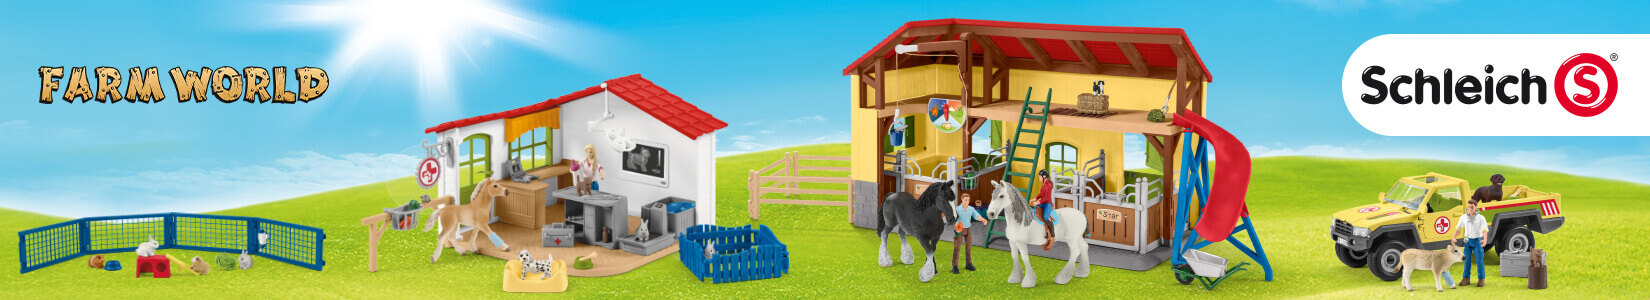 Schleich Farm World Artikel